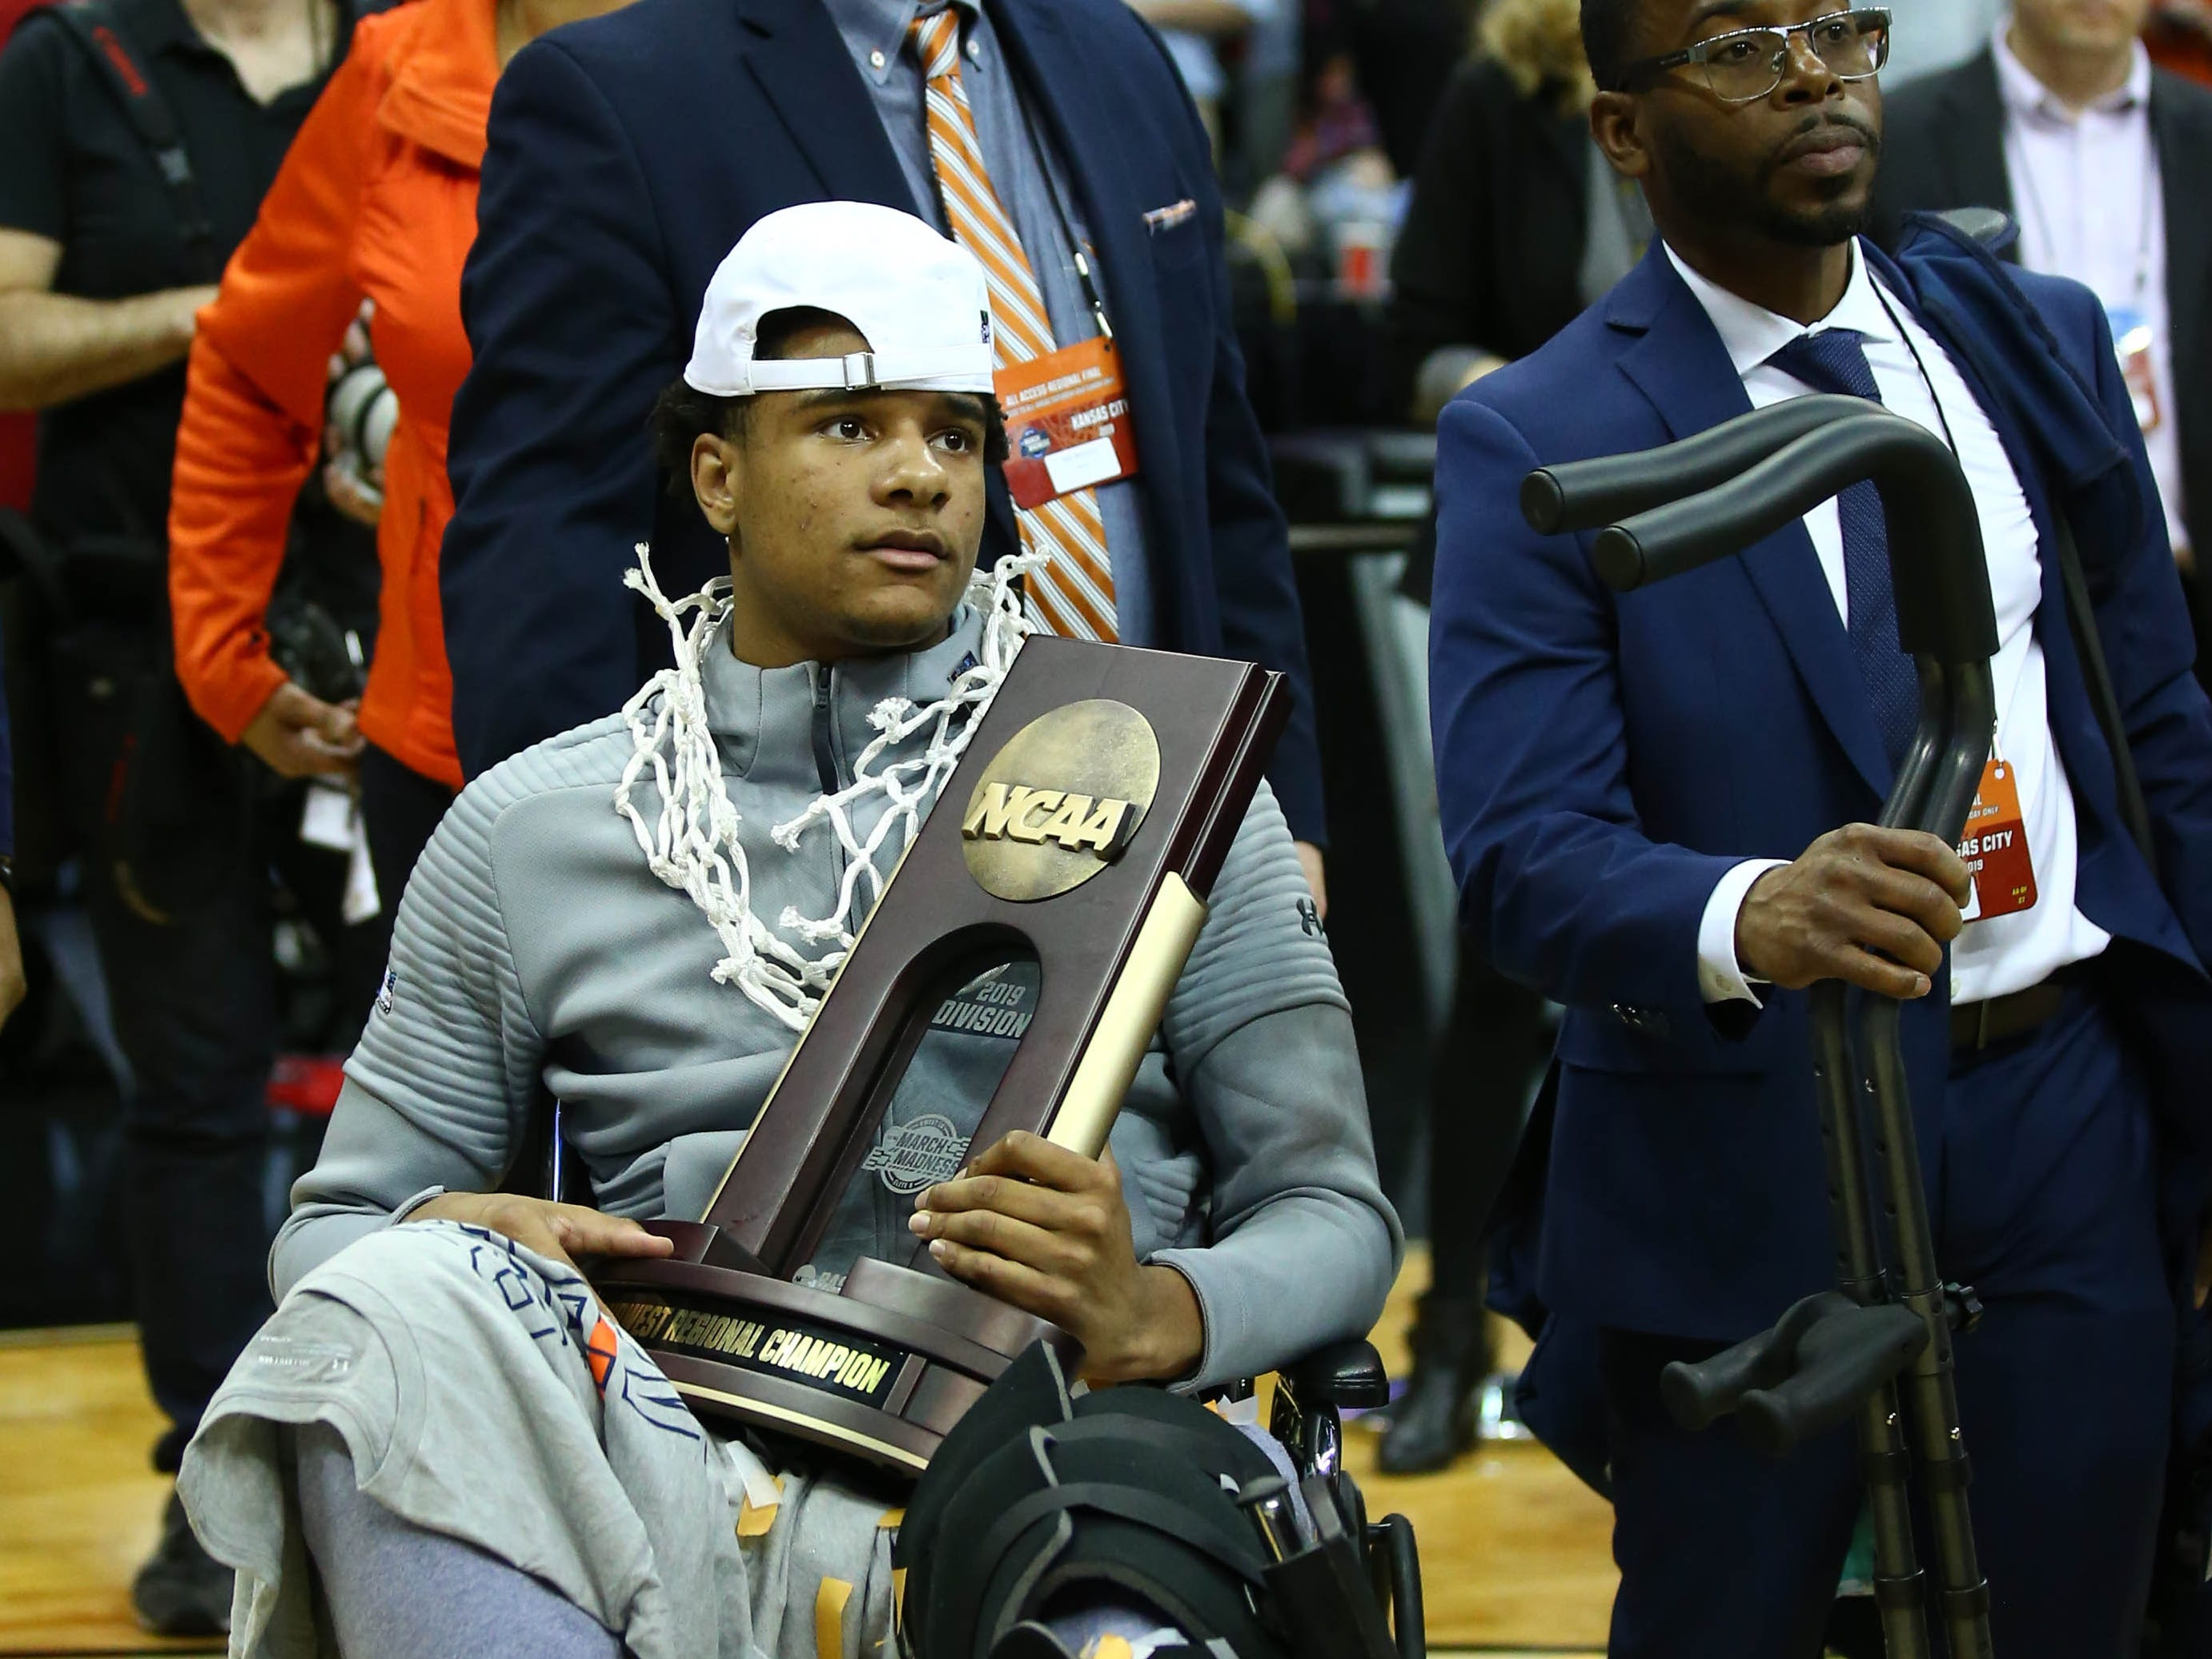 Mar 31, 2019; Kansas City, MO, United States; Auburn Tigers forward Chuma Okeke with the trophy after defeating the Kentucky Wildcats in the championship game of the midwest regional of the 2019 NCAA Tournament at Sprint Center. Mandatory Credit: Jay Biggerstaff-USA TODAY Sports